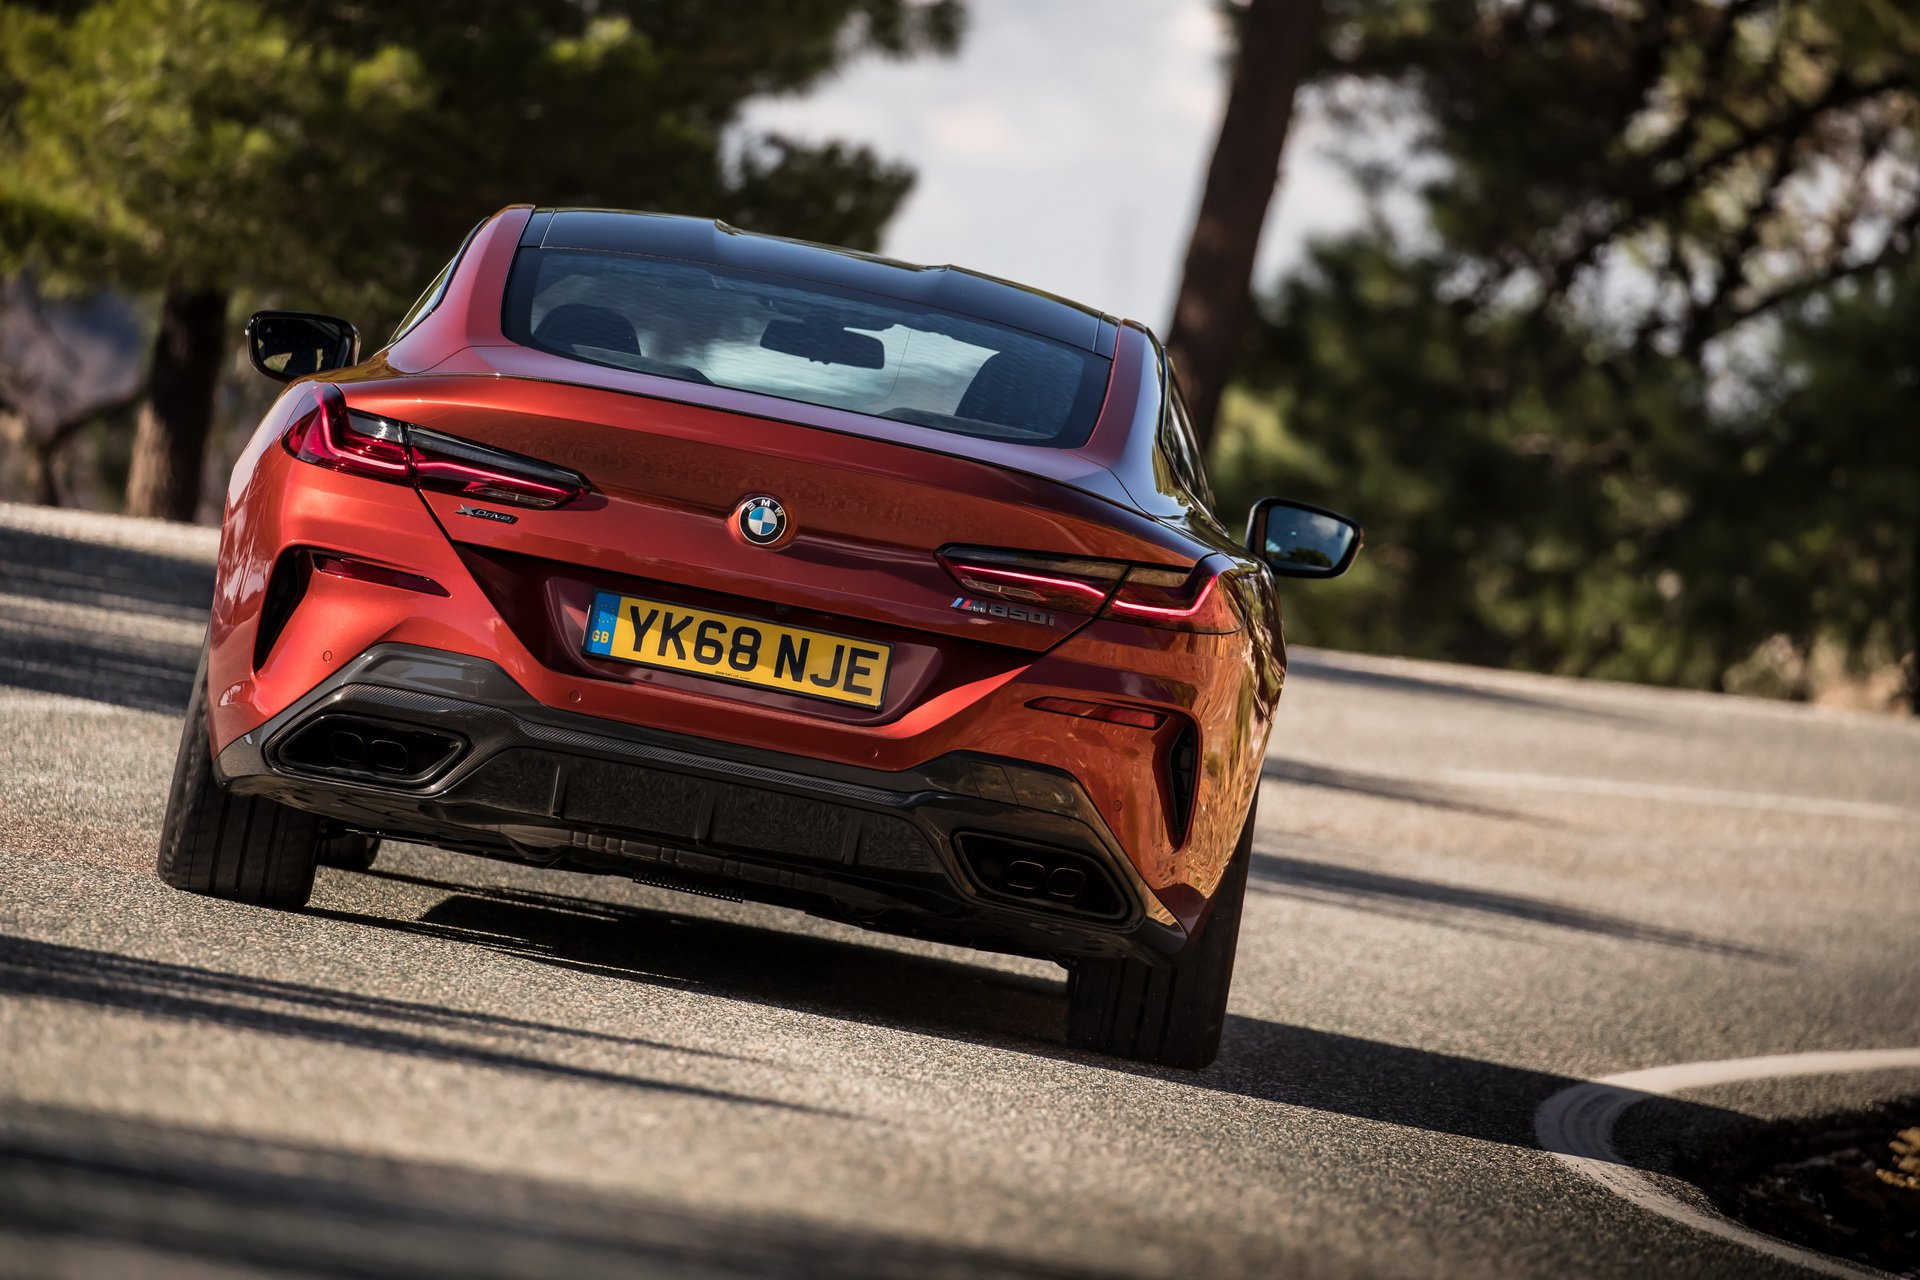 2019-bmw-8-series-uk-chot-gia-2.jpg